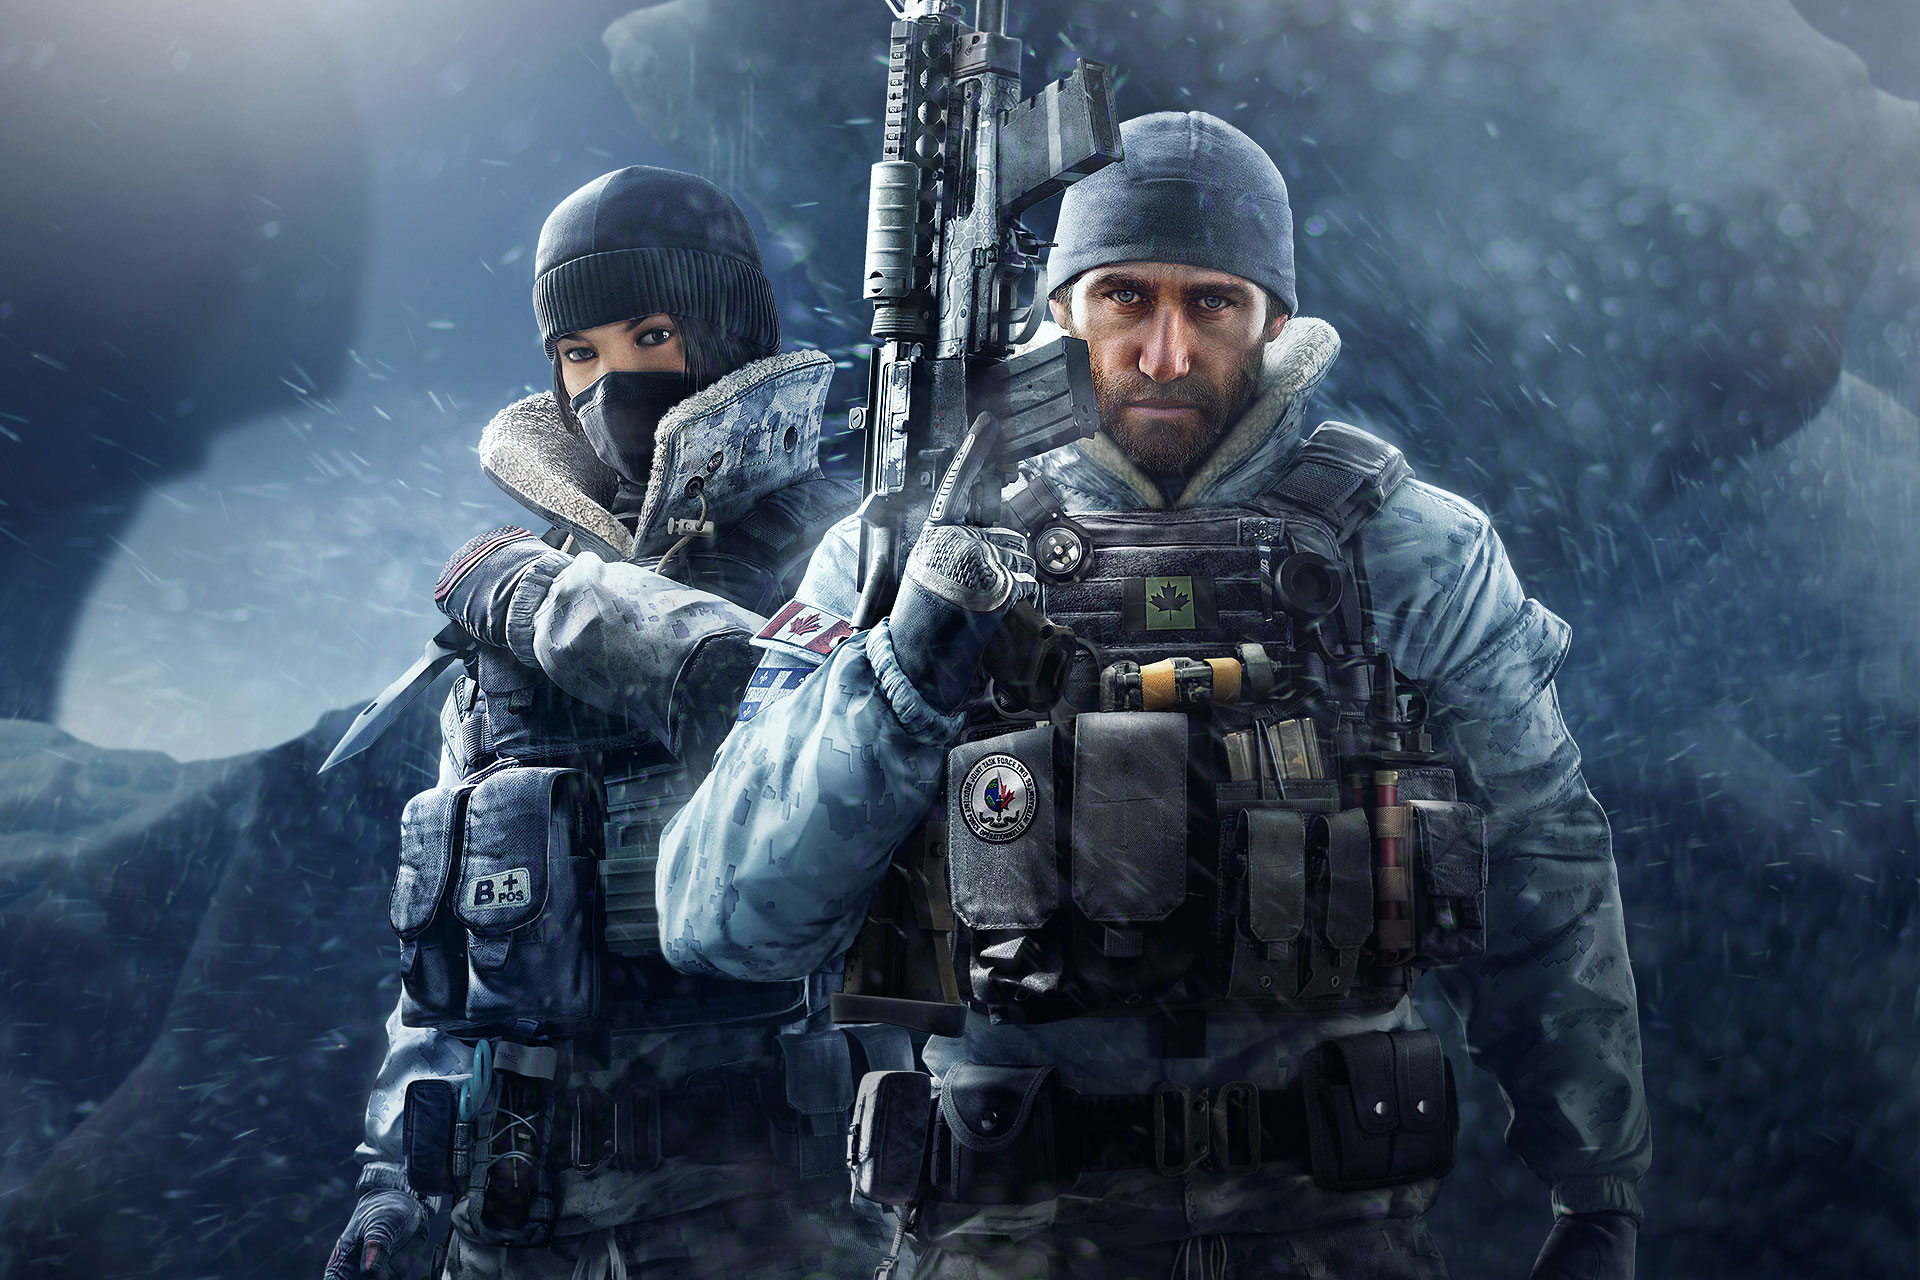 Promotional shot of Operators Frost (in a balaclava) and Buck (bearded, in a beanie, with a big rifle)